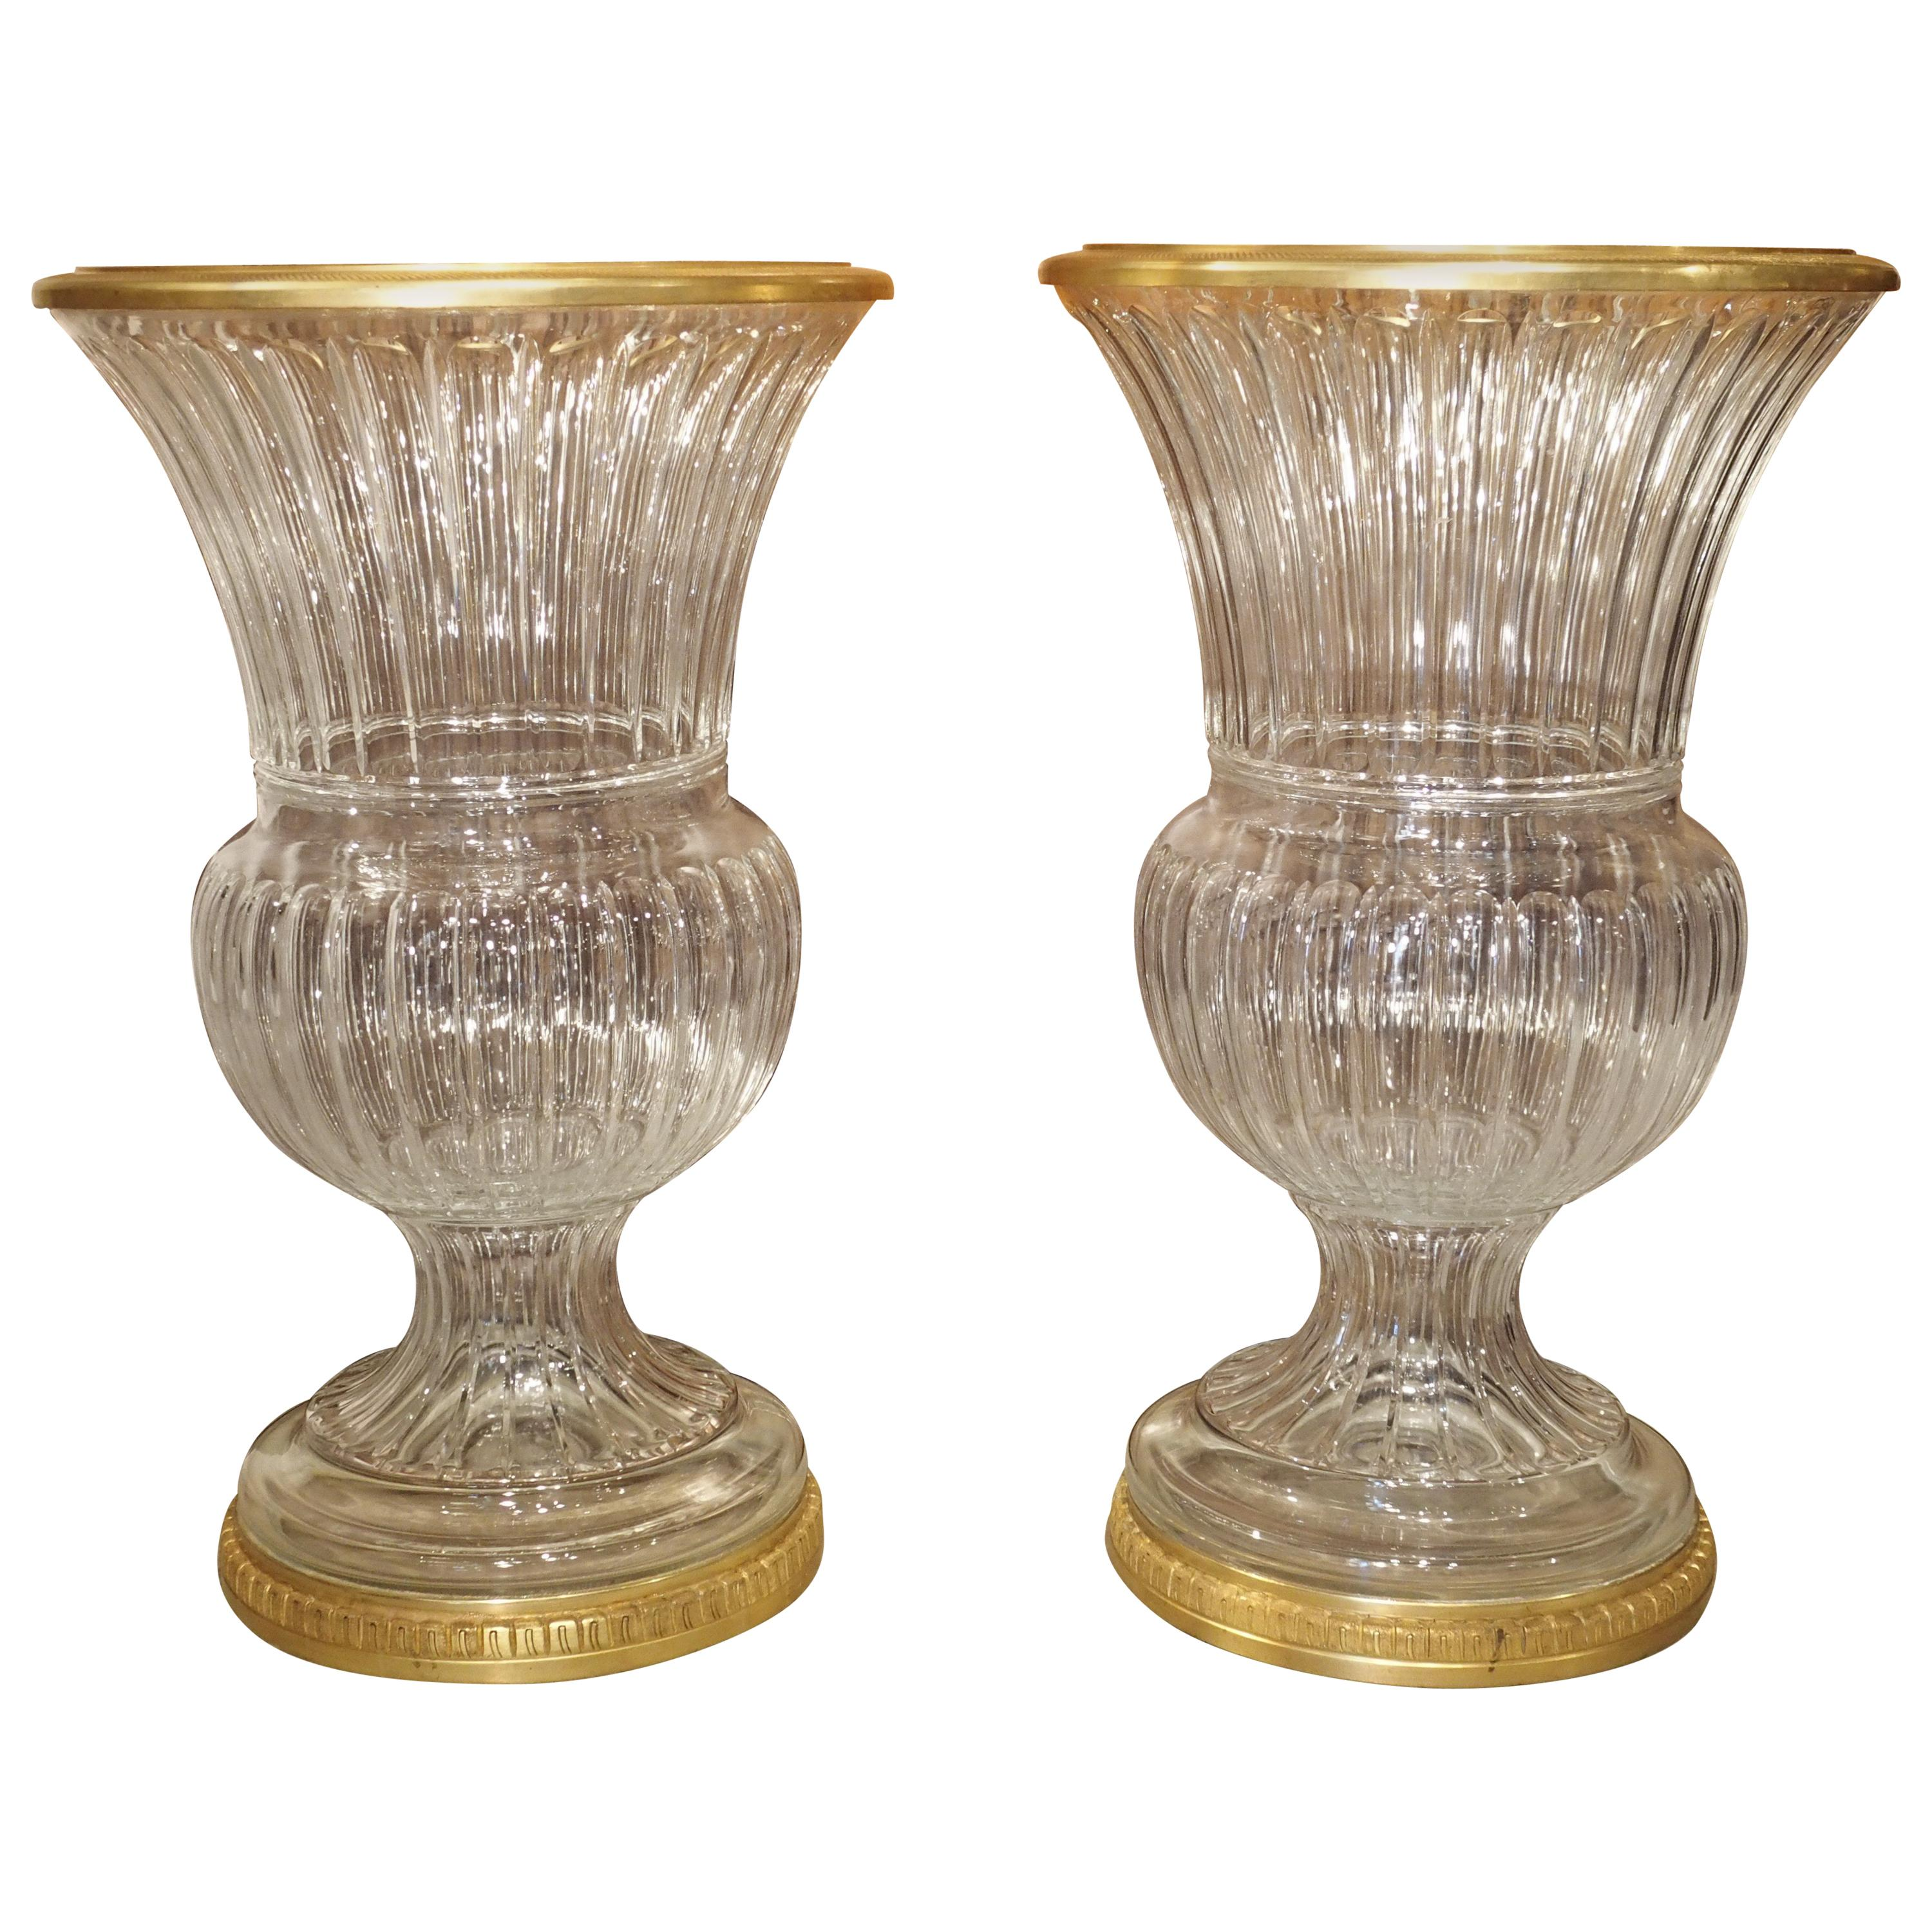 Pair of Large Scale French Cut Crystal and Gilt Bronze Vases